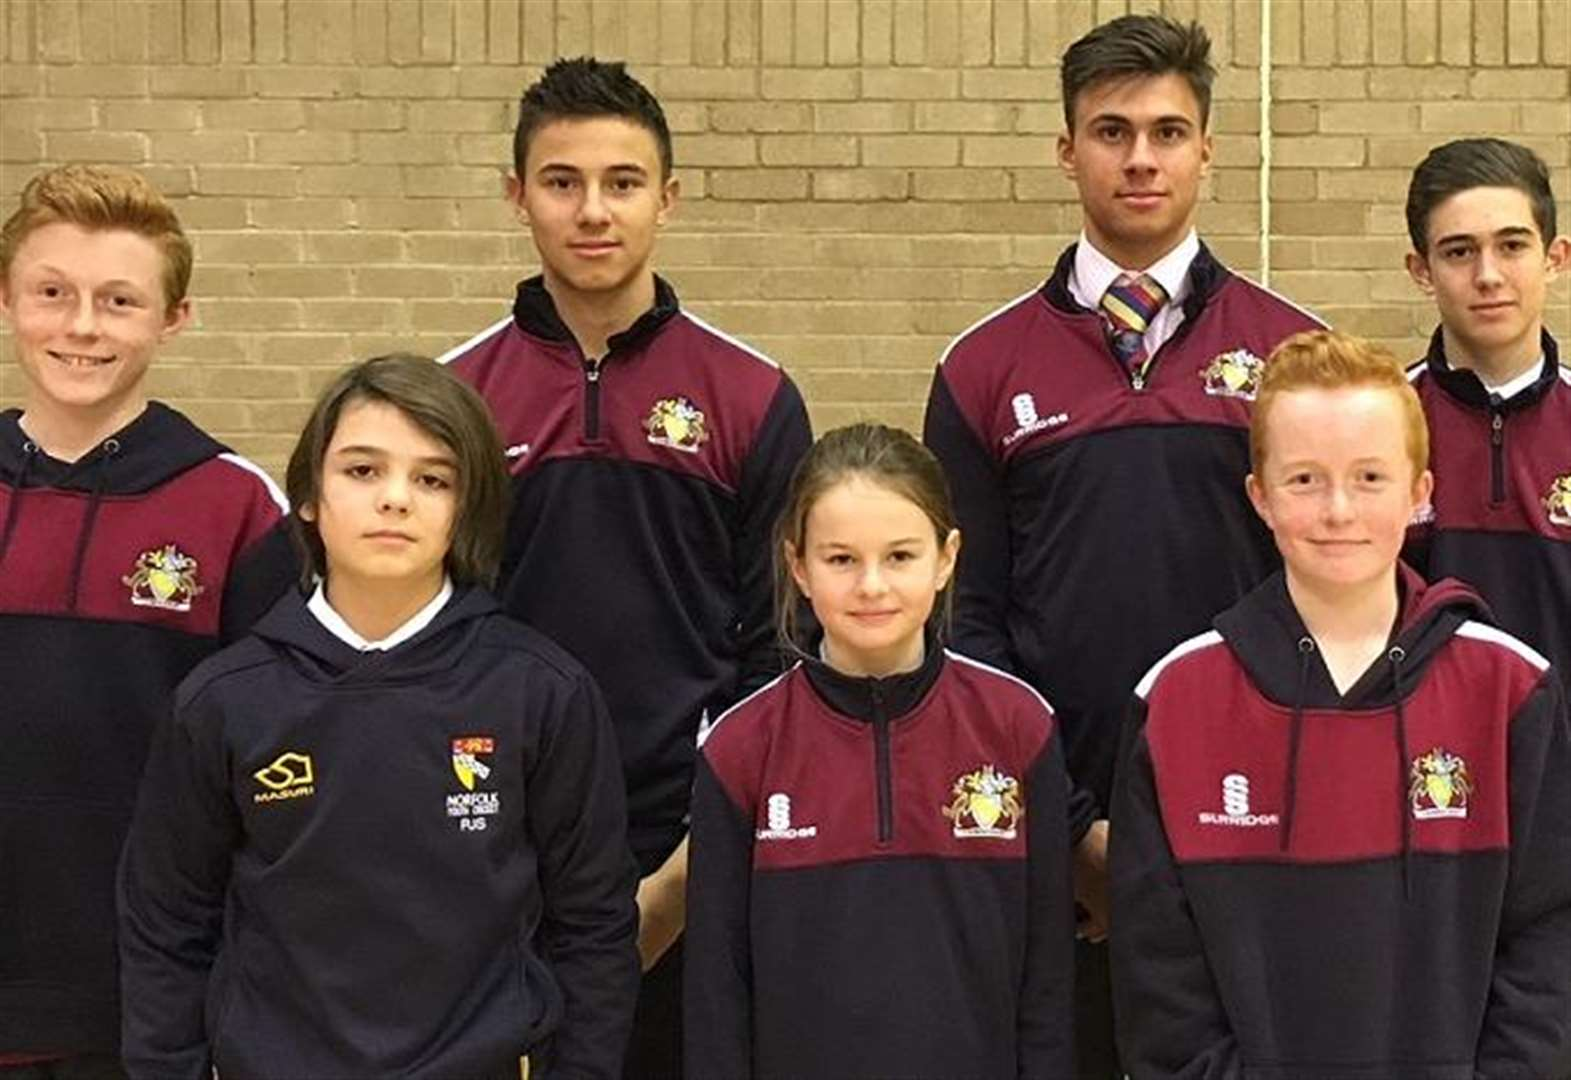 Eight Wisbech Grammar School pupils picked to represent Cambs and Norfolk counties at cricket this season